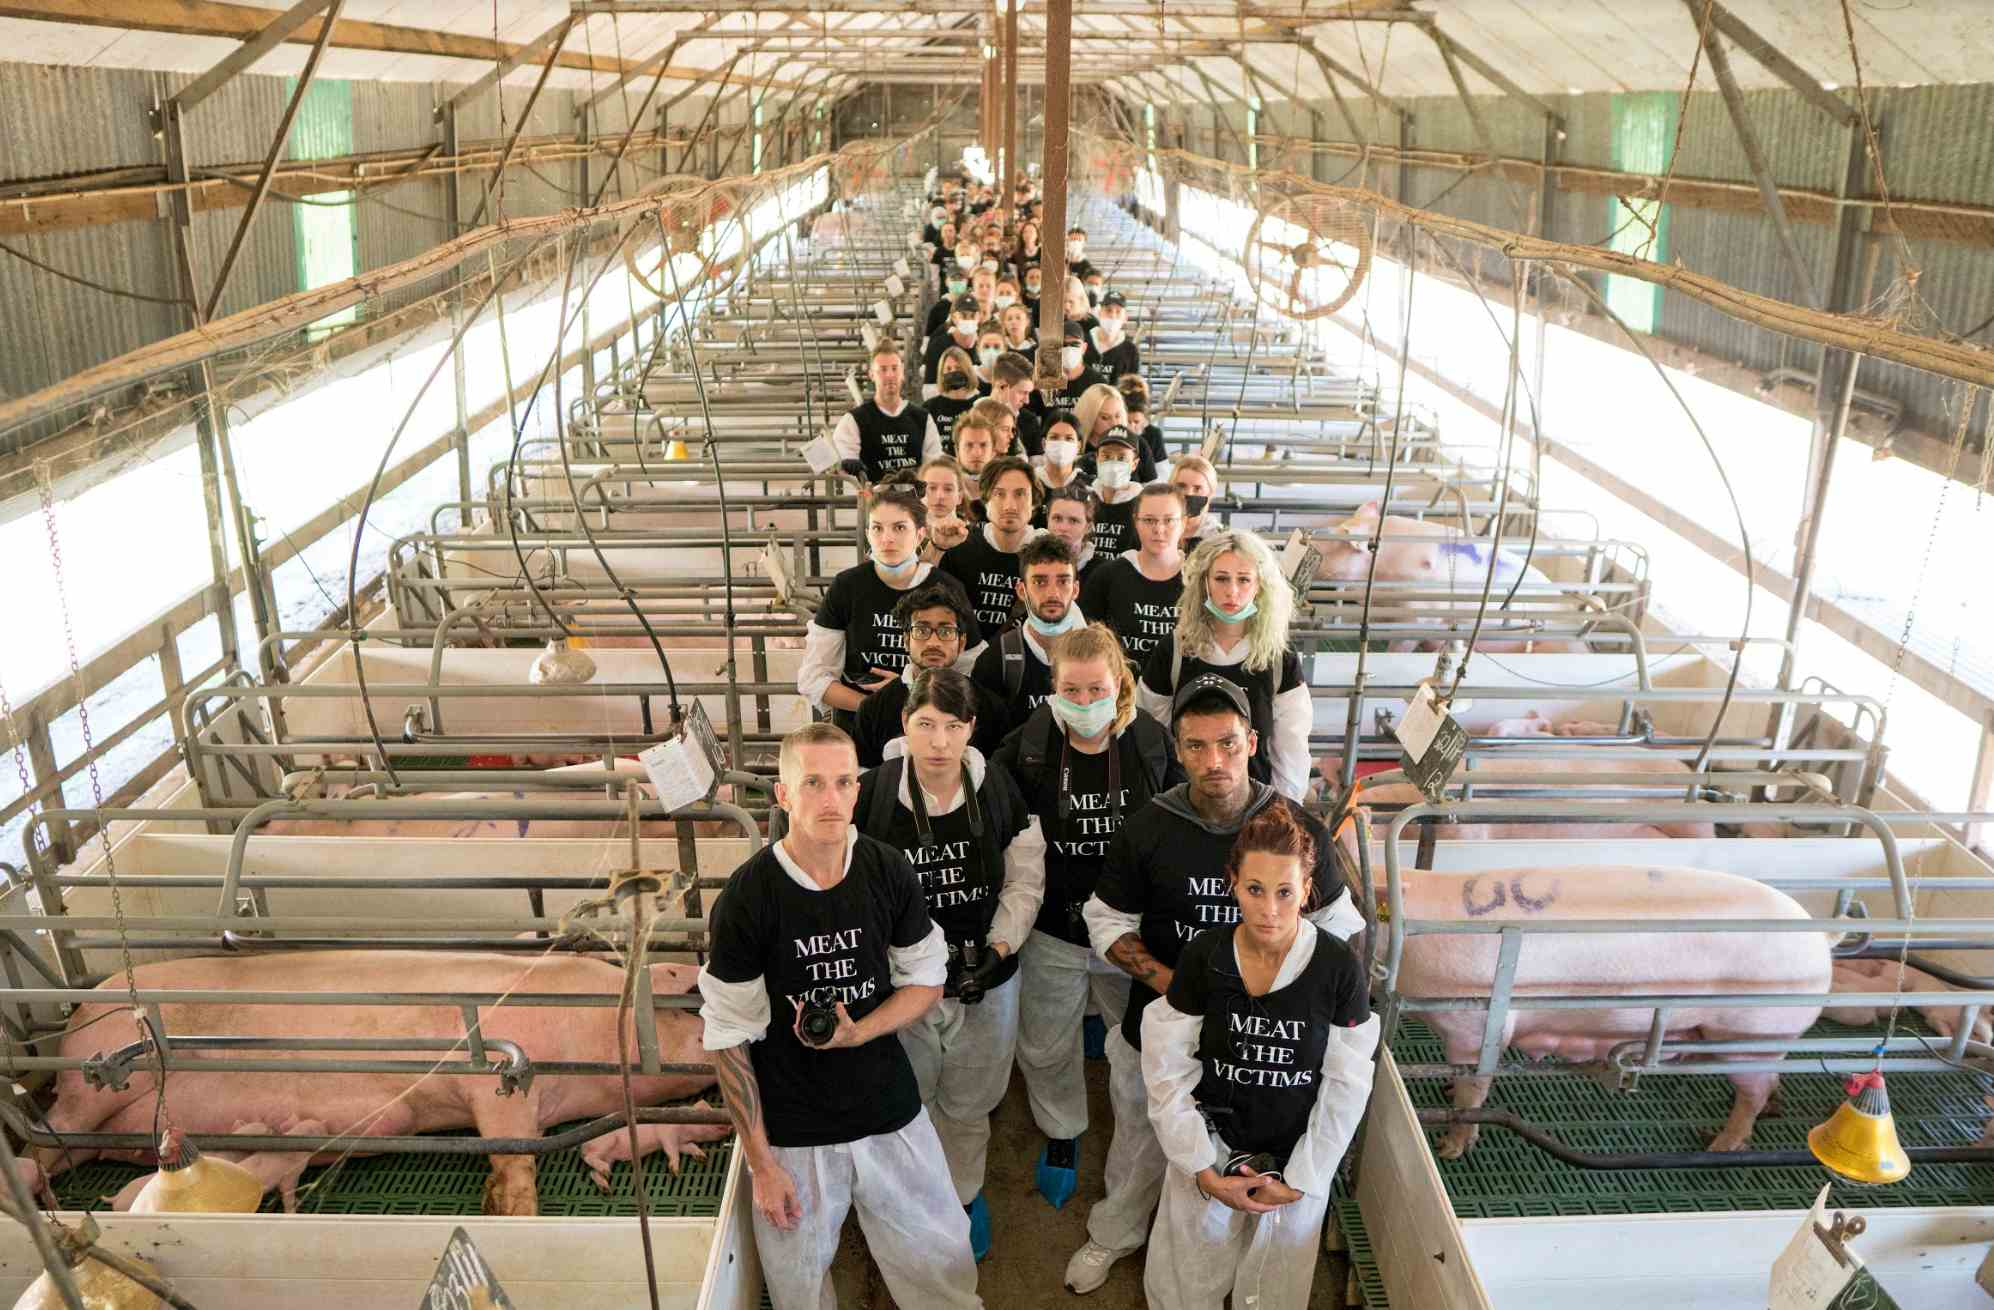 100 Animal Activists Lock Down Farm After Footage Shows 'Extreme Violence'